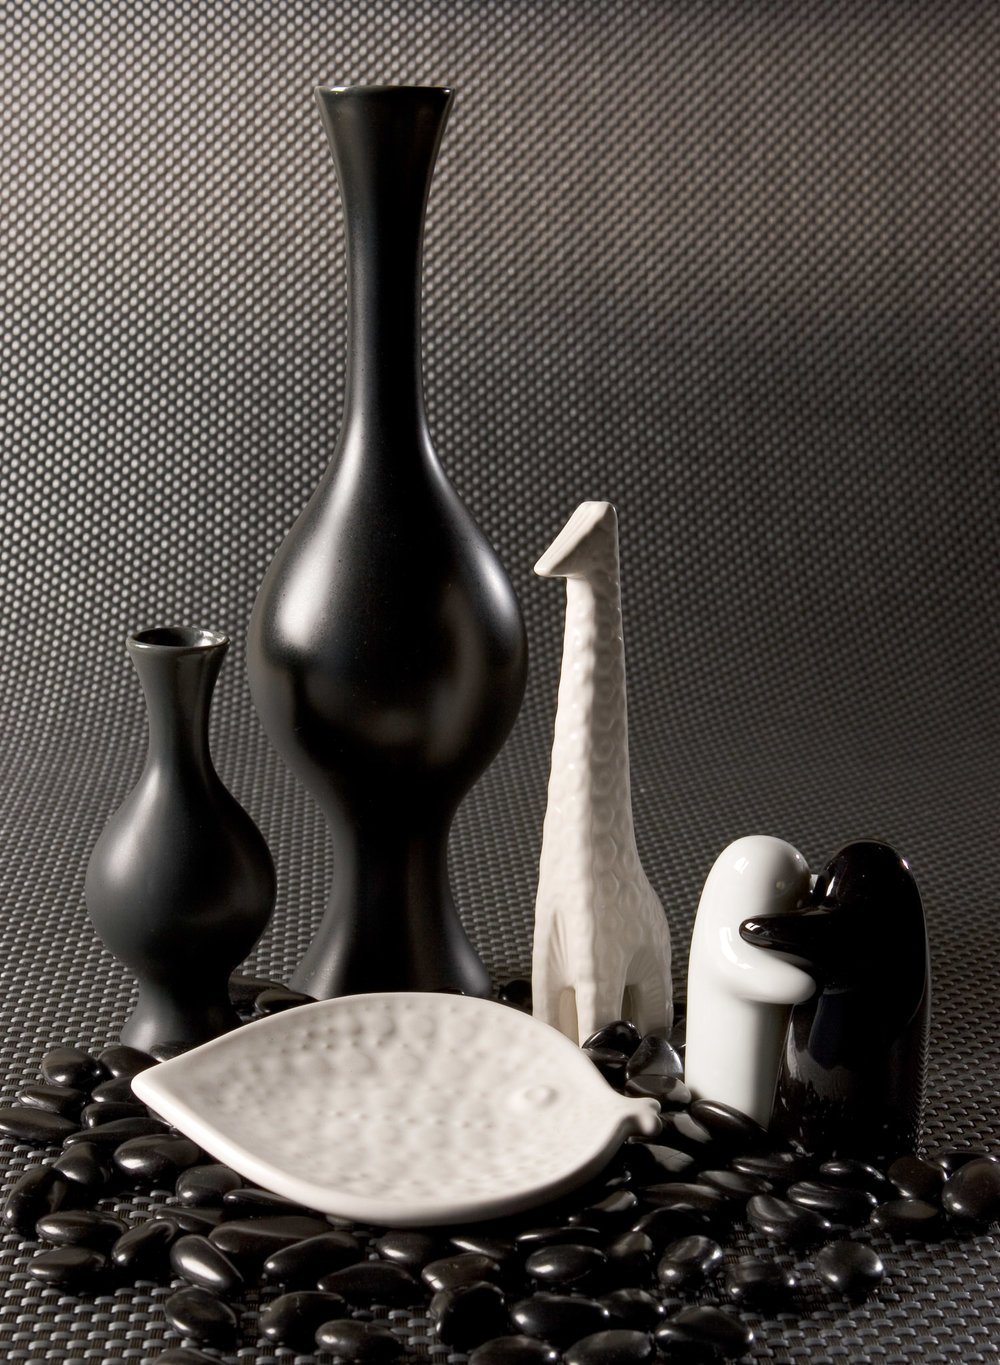 Houseware Still Life